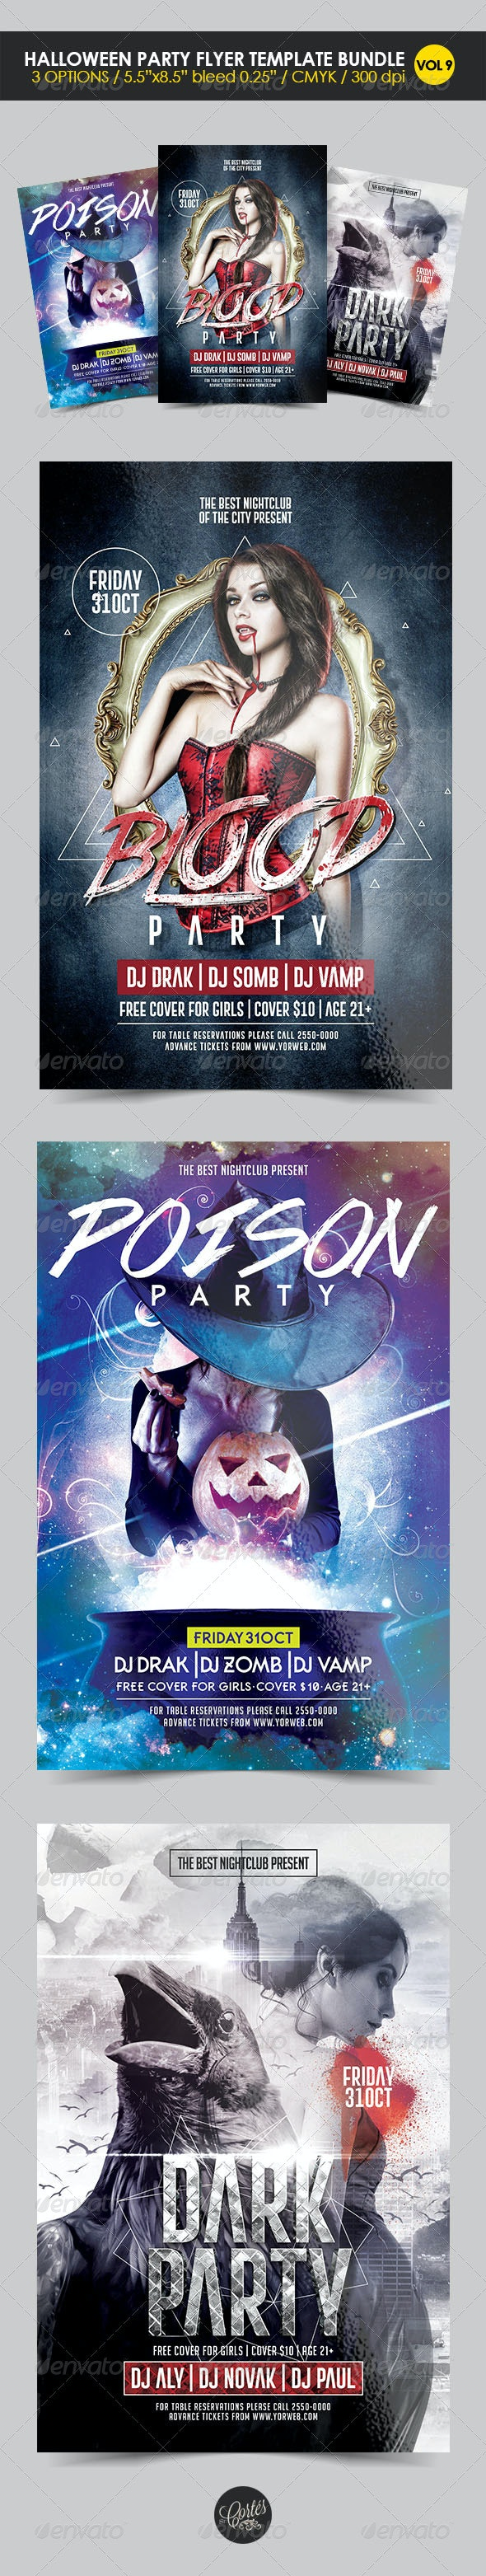 Halloween Party Flyer Template Bundle Vol. 9 - Holidays Events